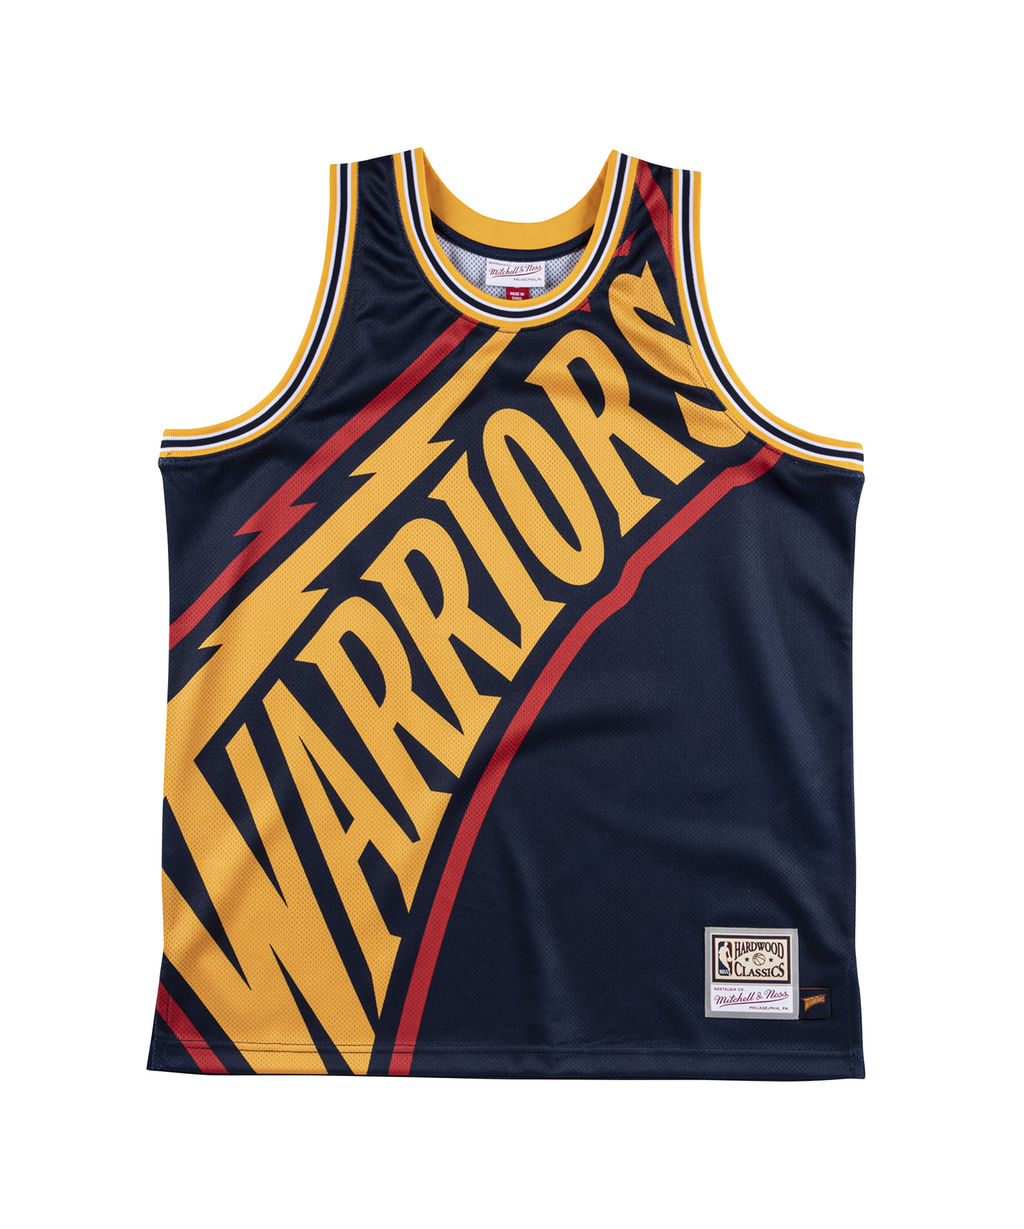 Golden State Warriors Big Face Jersey